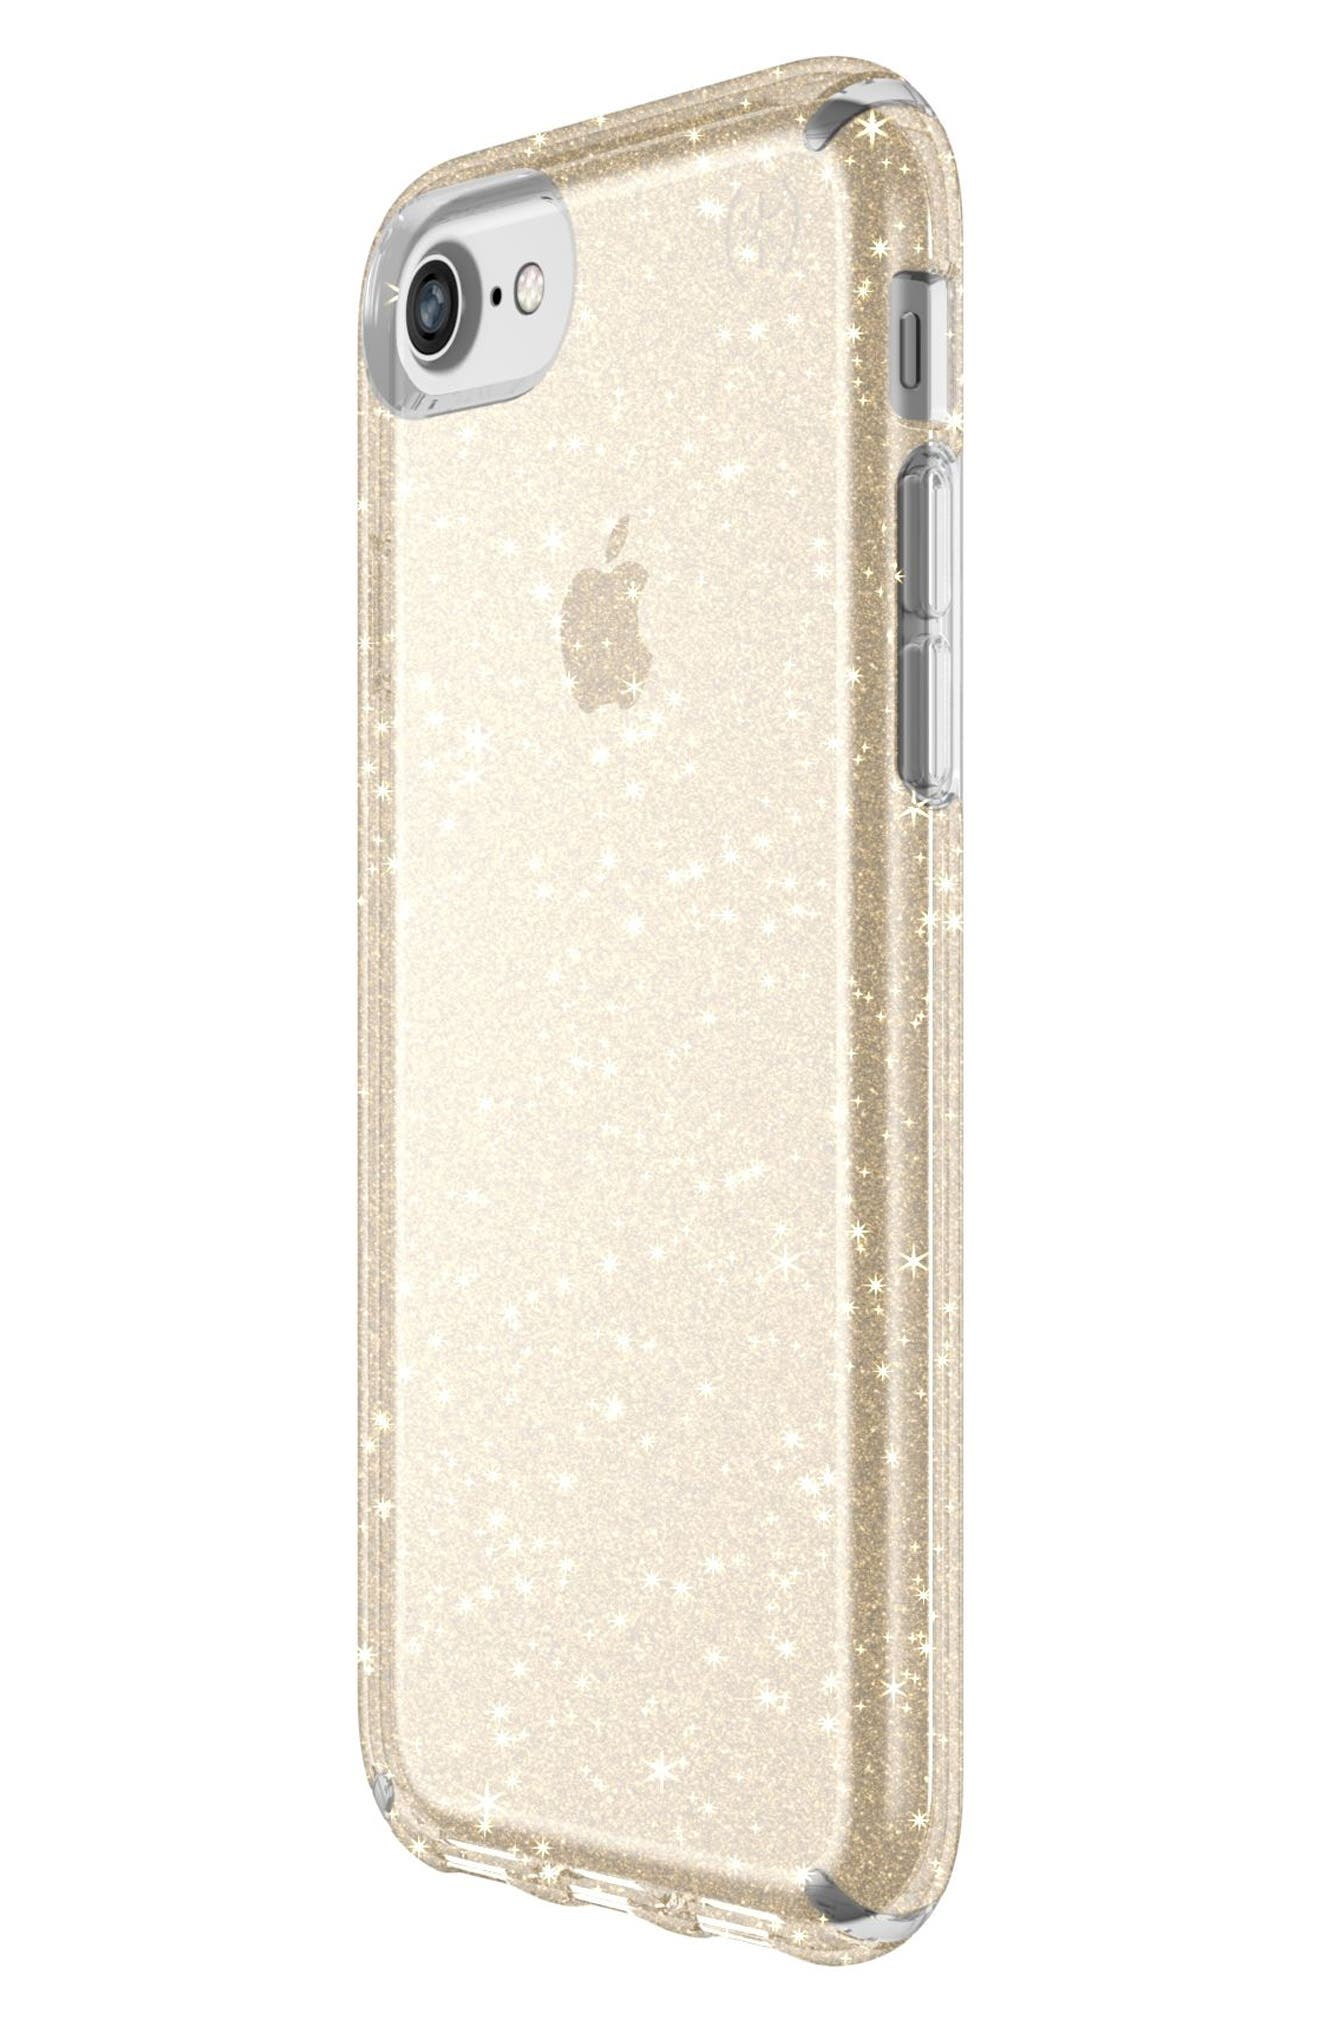 iPhone 6/6s/7/8 Case,                             Alternate thumbnail 6, color,                             CLEAR WITH GOLD GLITTER/ CLEAR